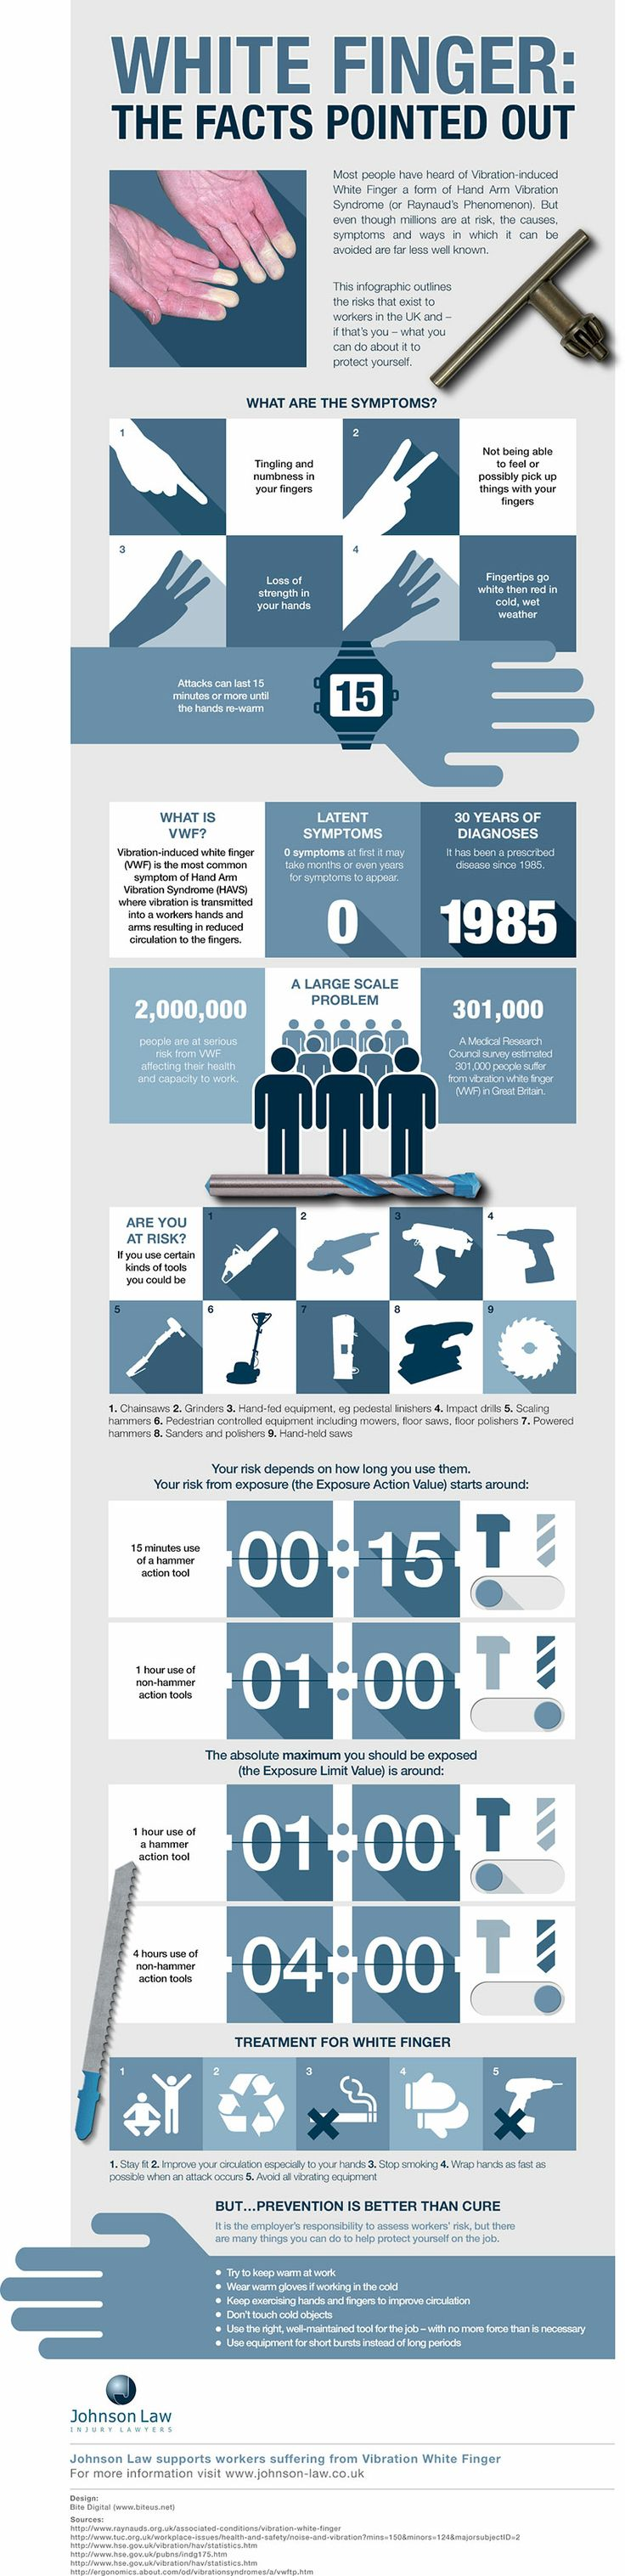 Vibration White Finger infographic - the facts.